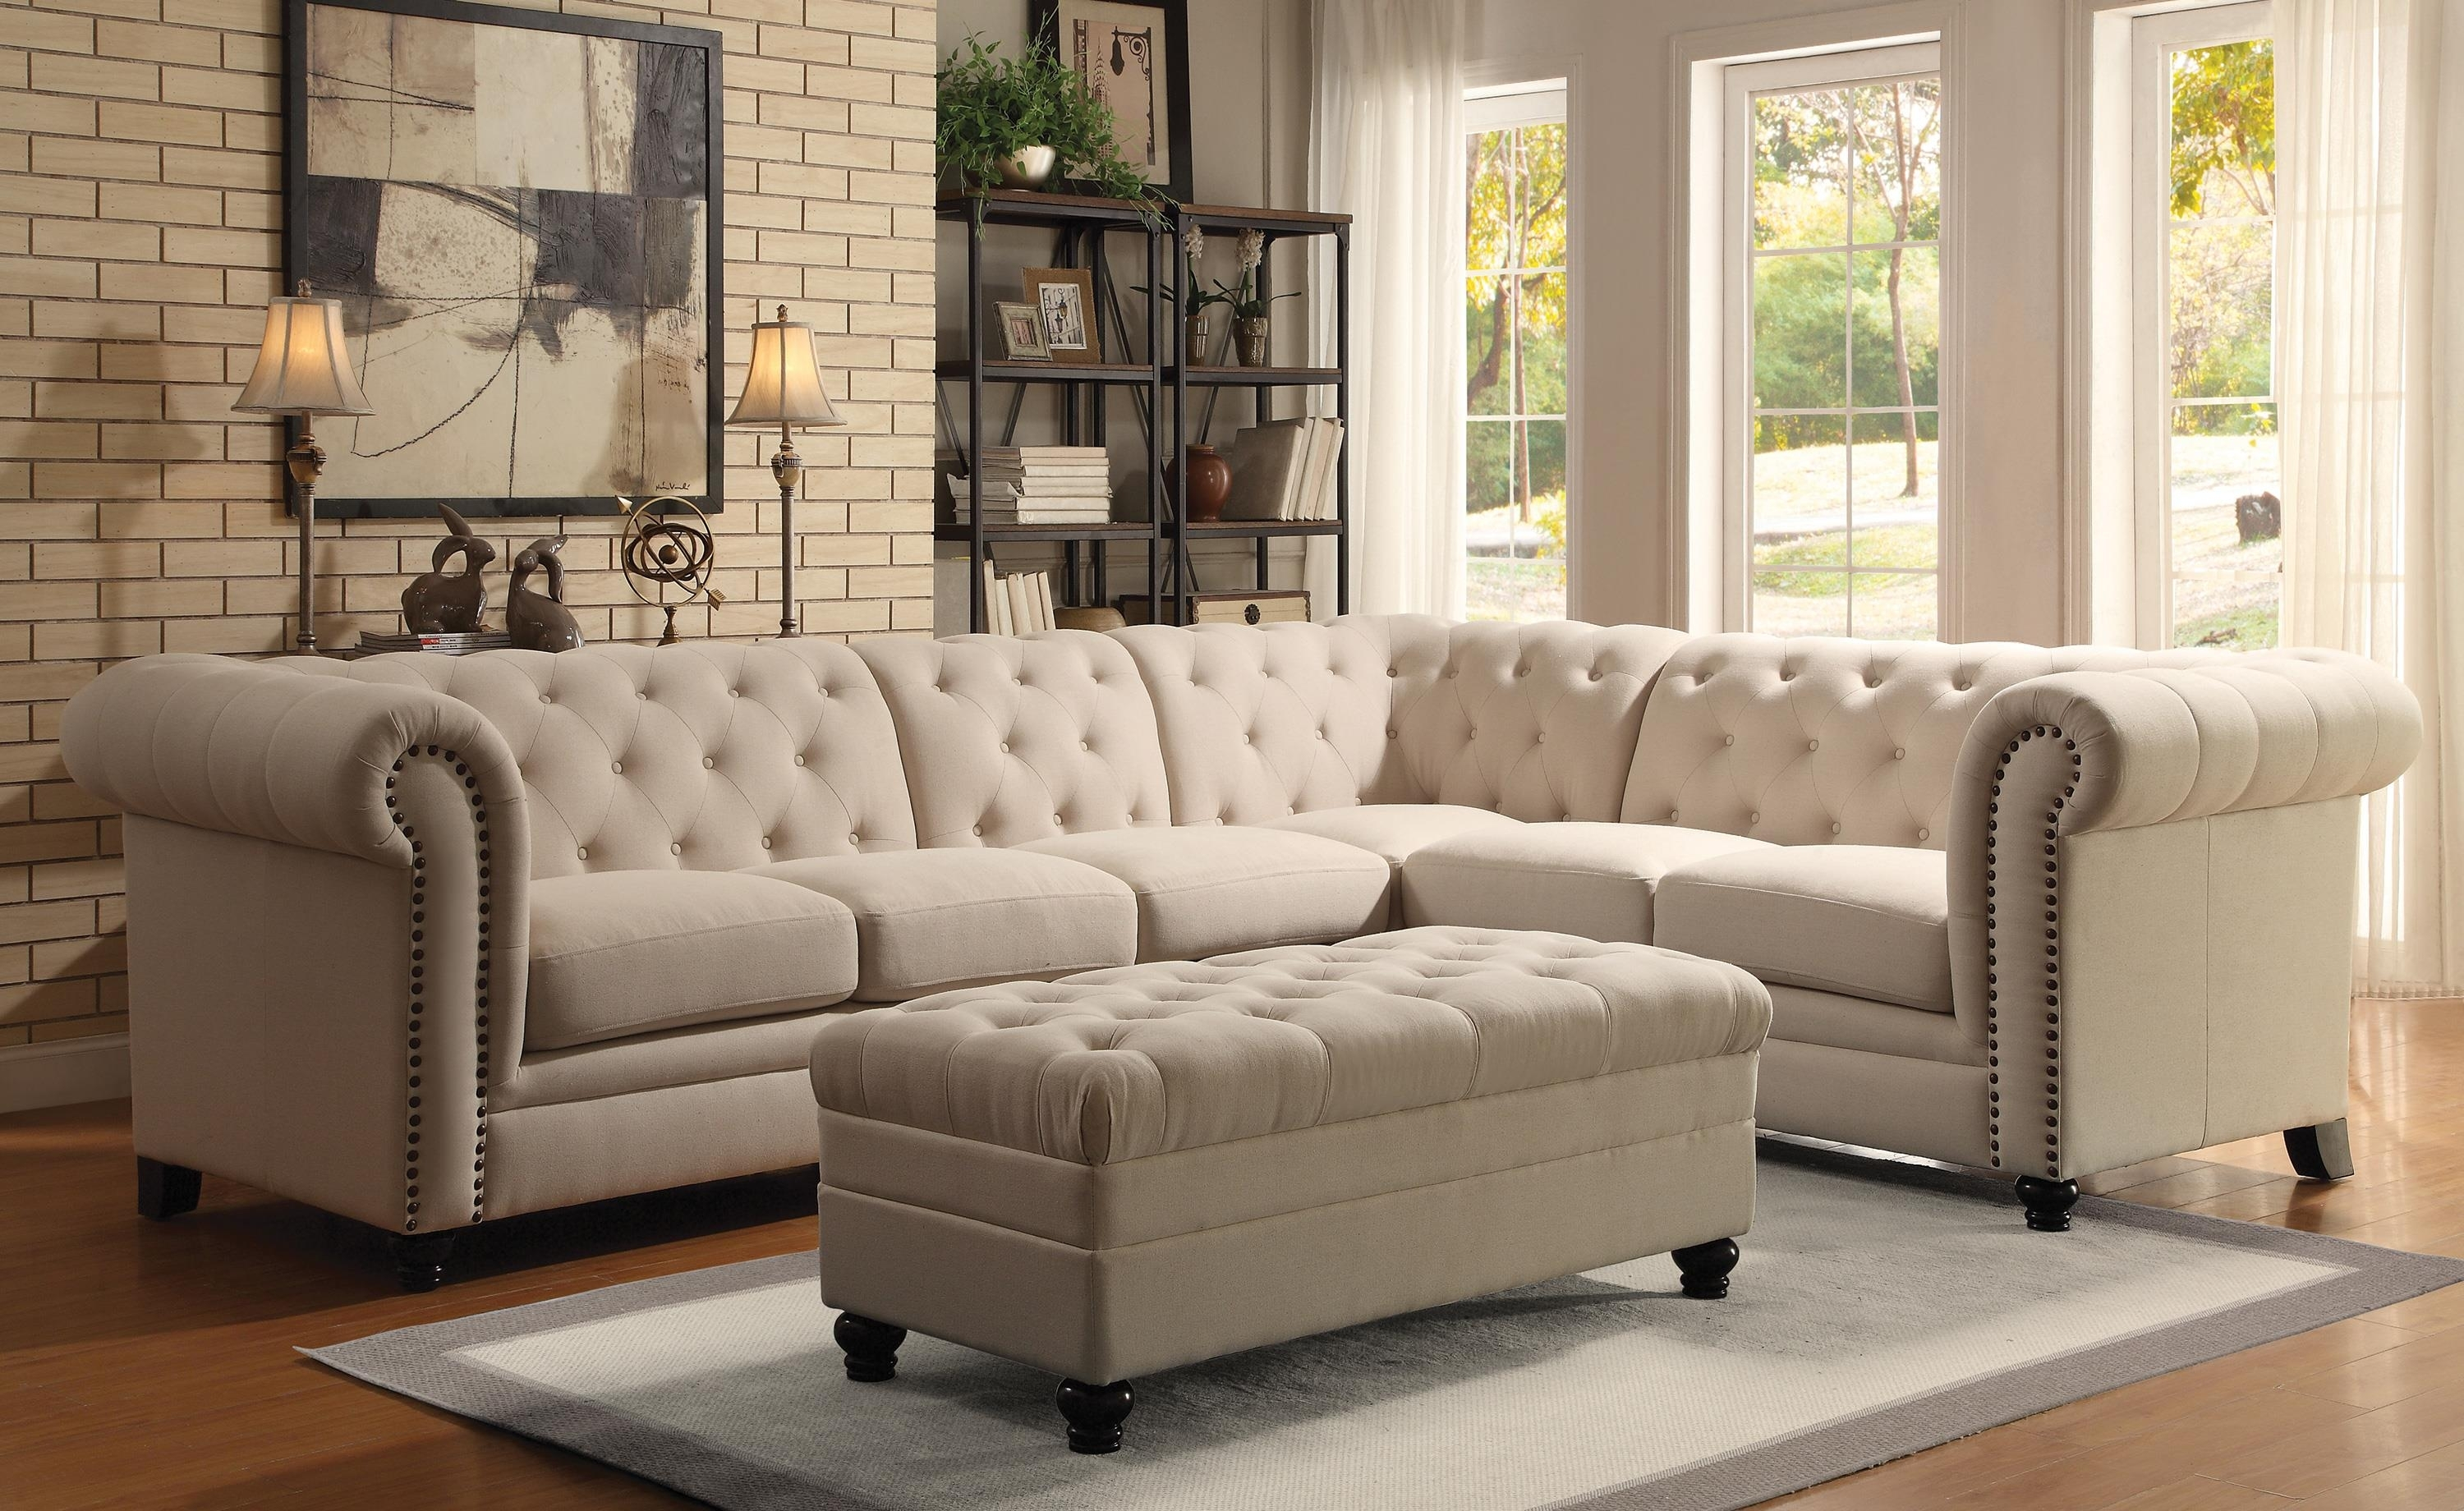 Sofa : Trendy Tufted Sofa Sectional Light Brown Fabric Ashley with regard to Ashley Tufted Sofas (Image 9 of 10)